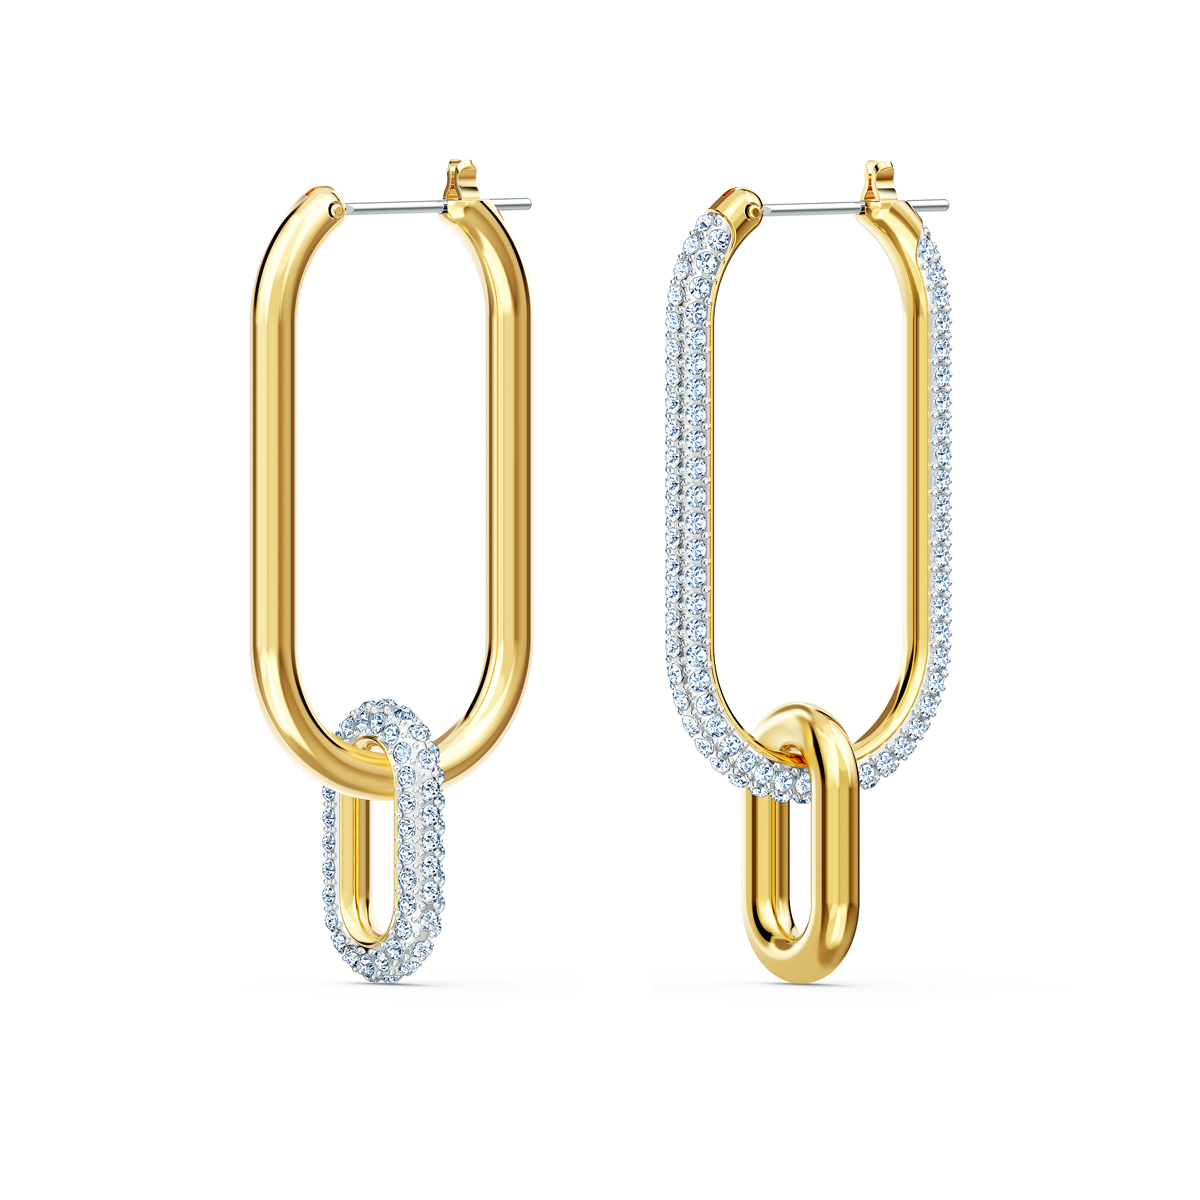 Swarovski Time Hoop Pierced Earrings, White, Mixed Metal Finish